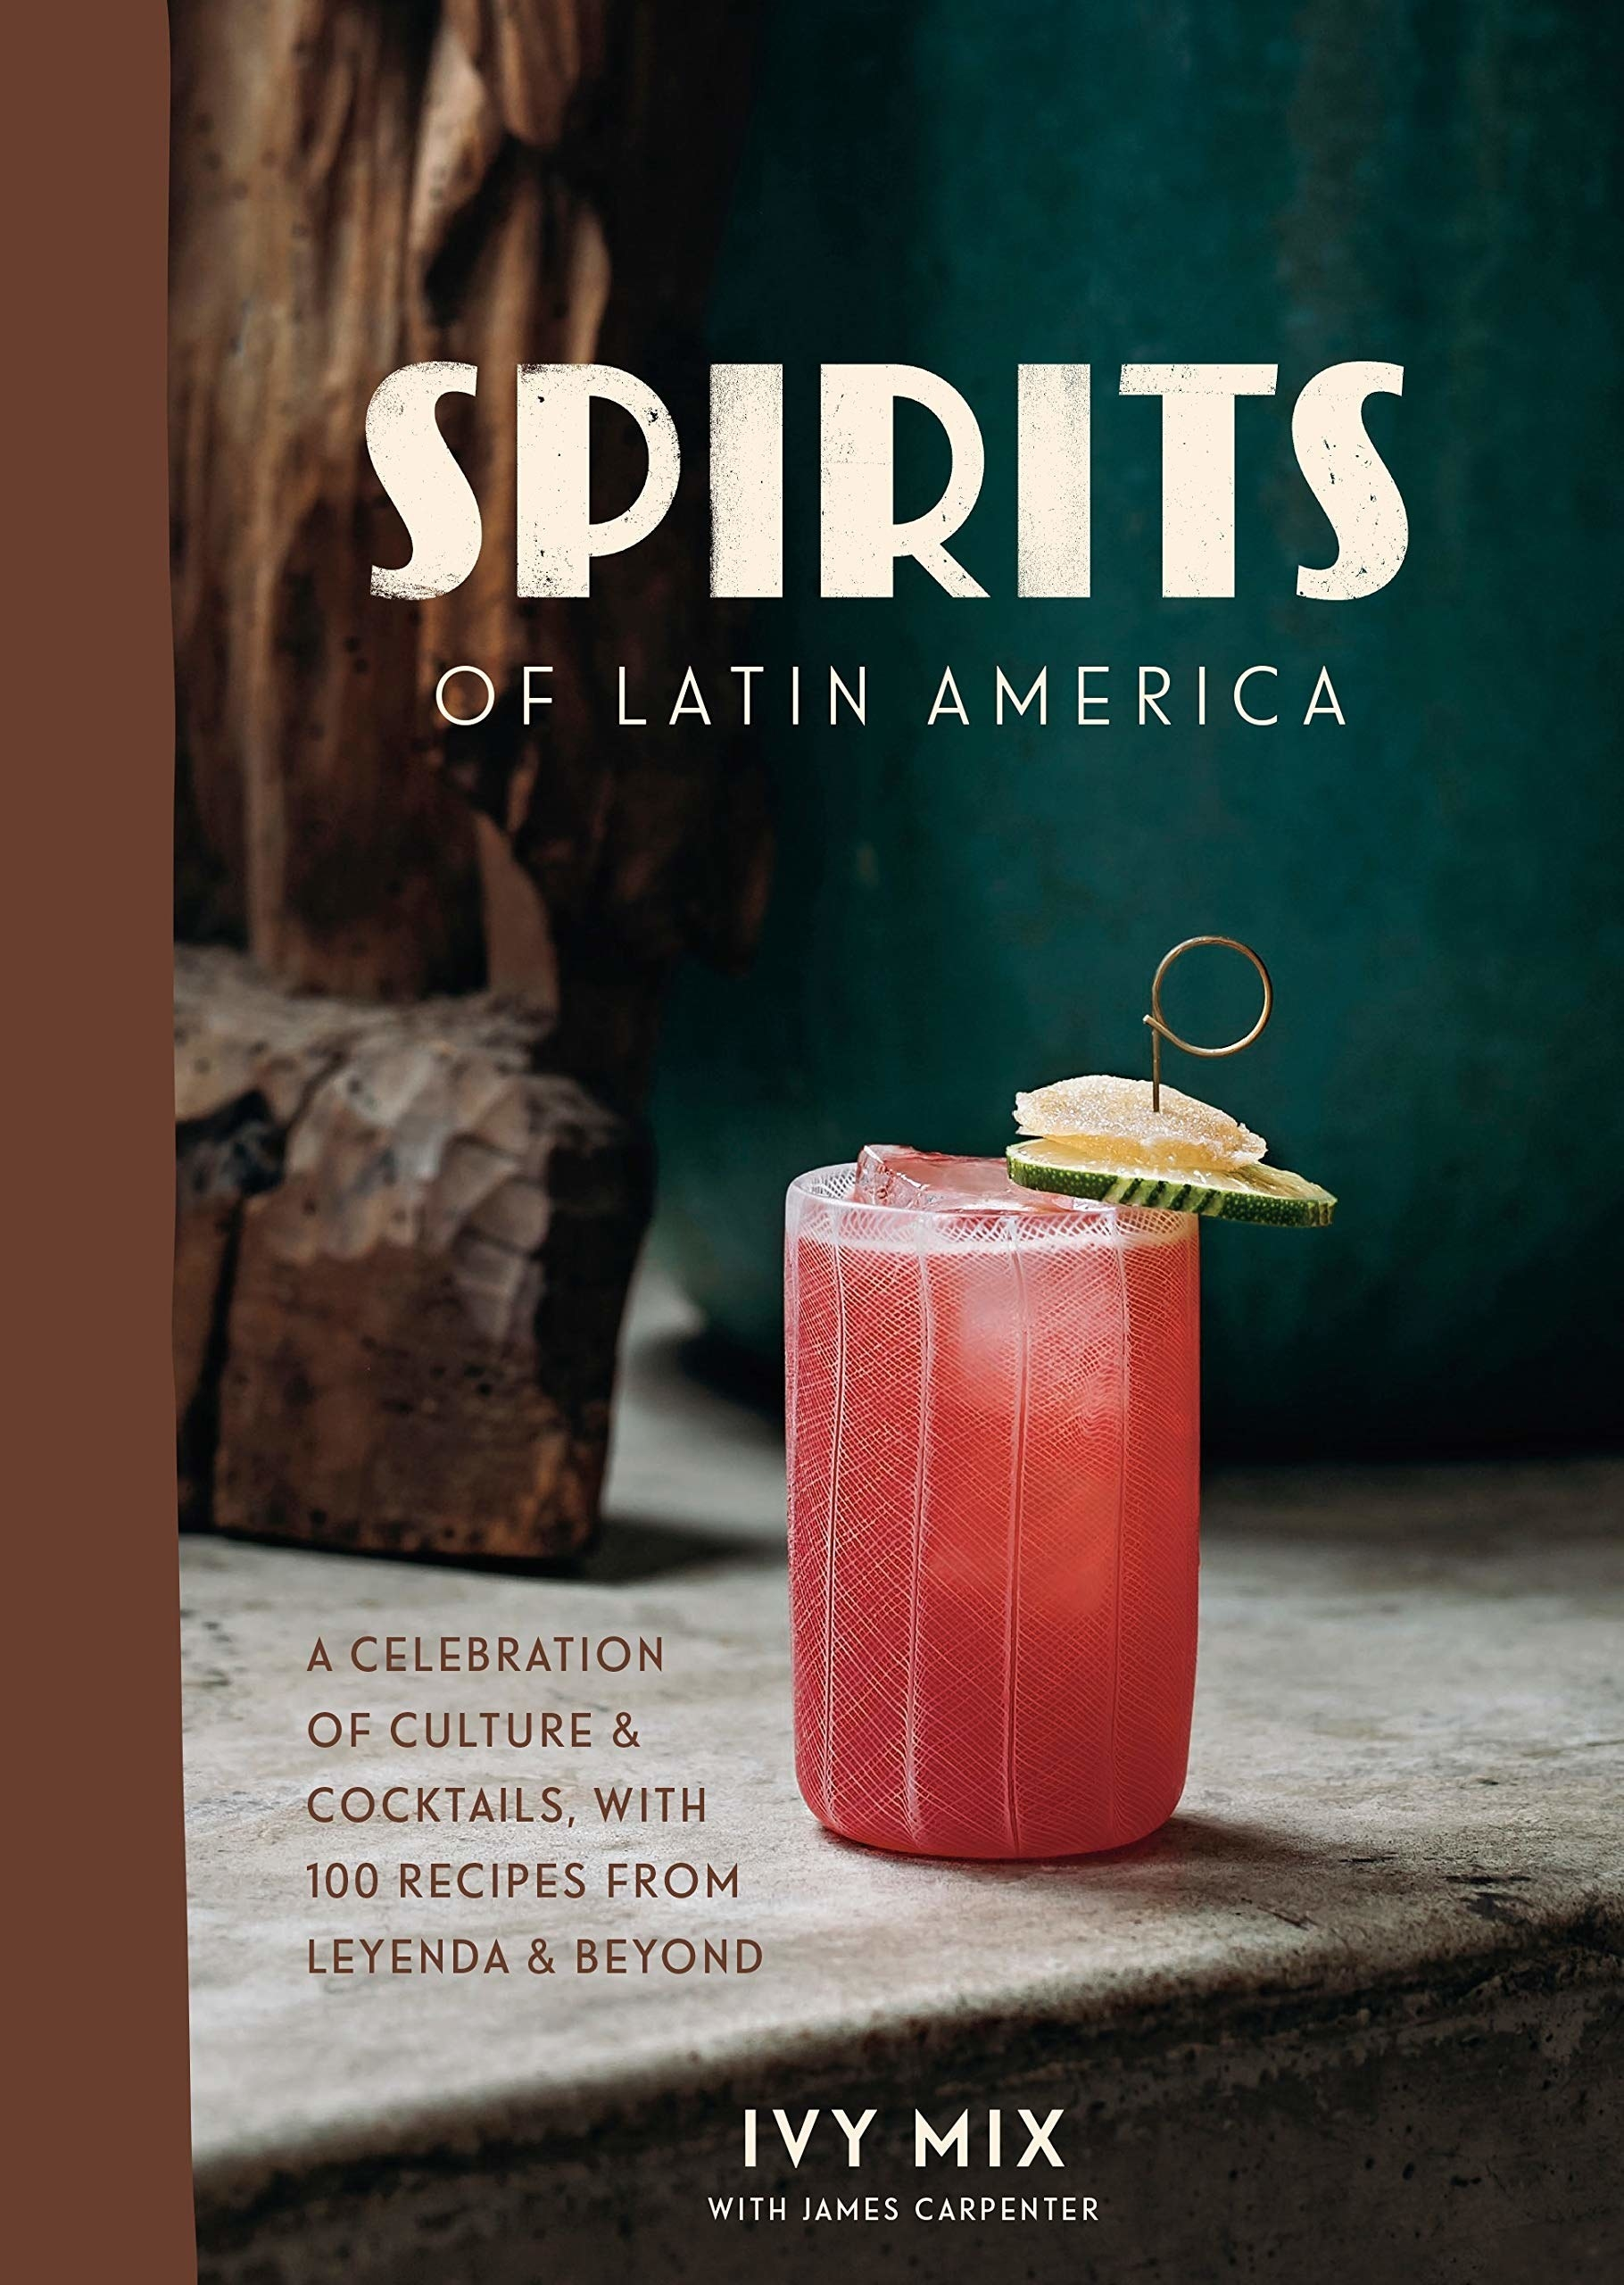 The book cover featuring a pink tropical drink on a wooden table